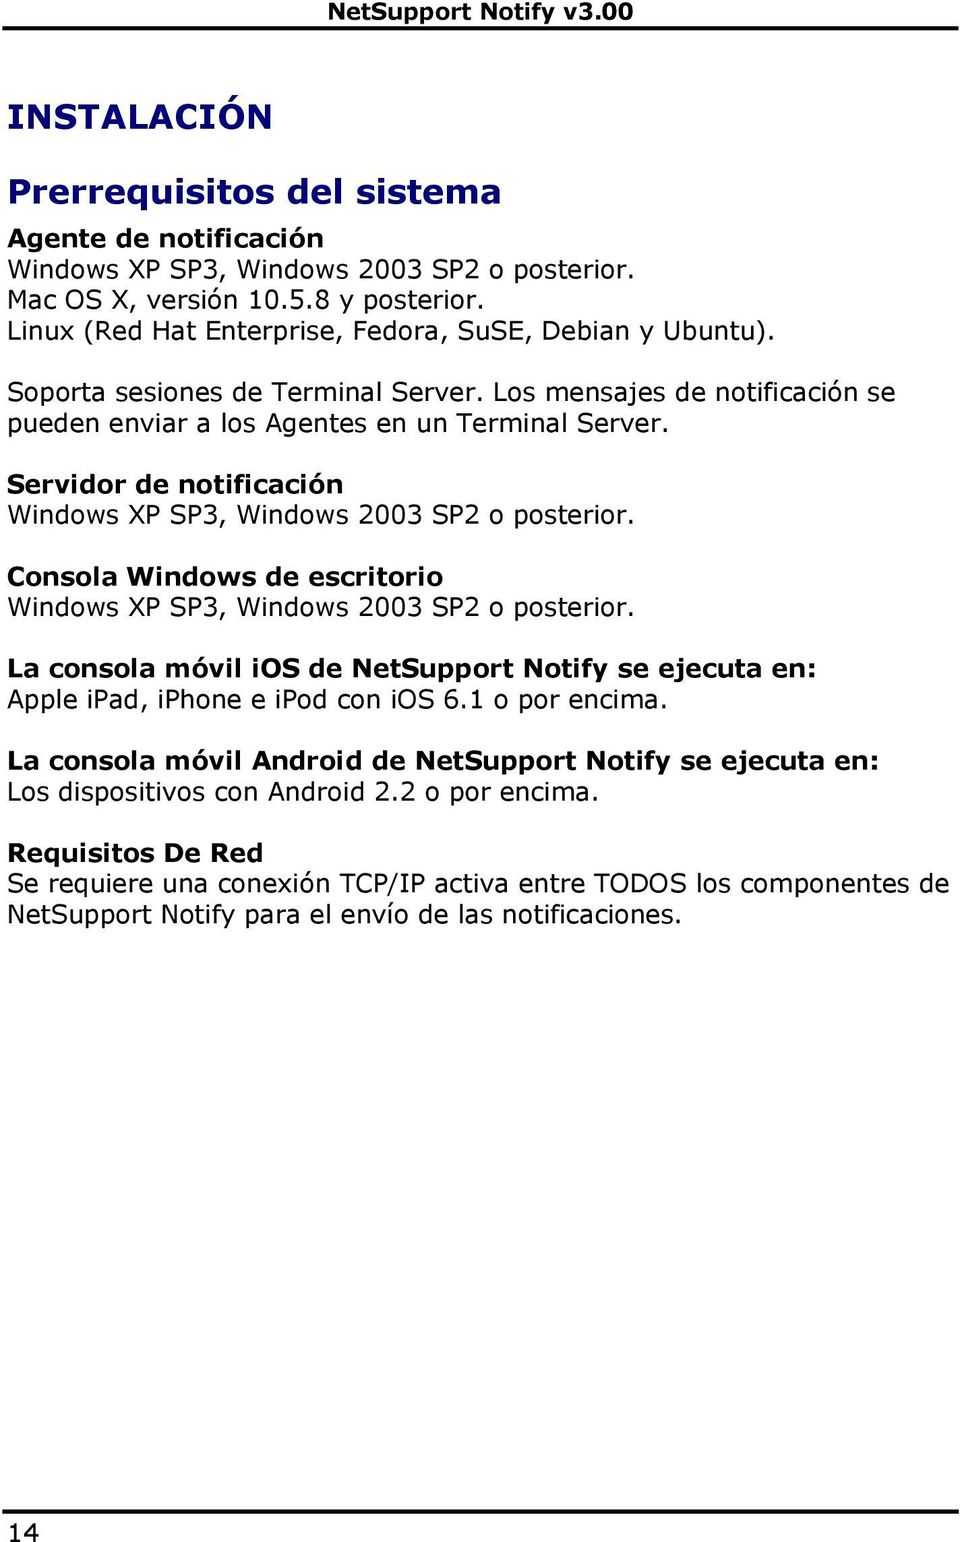 Servidor de notificación Windows XP SP3, Windows 2003 SP2 o posterior. Consola Windows de escritorio Windows XP SP3, Windows 2003 SP2 o posterior.